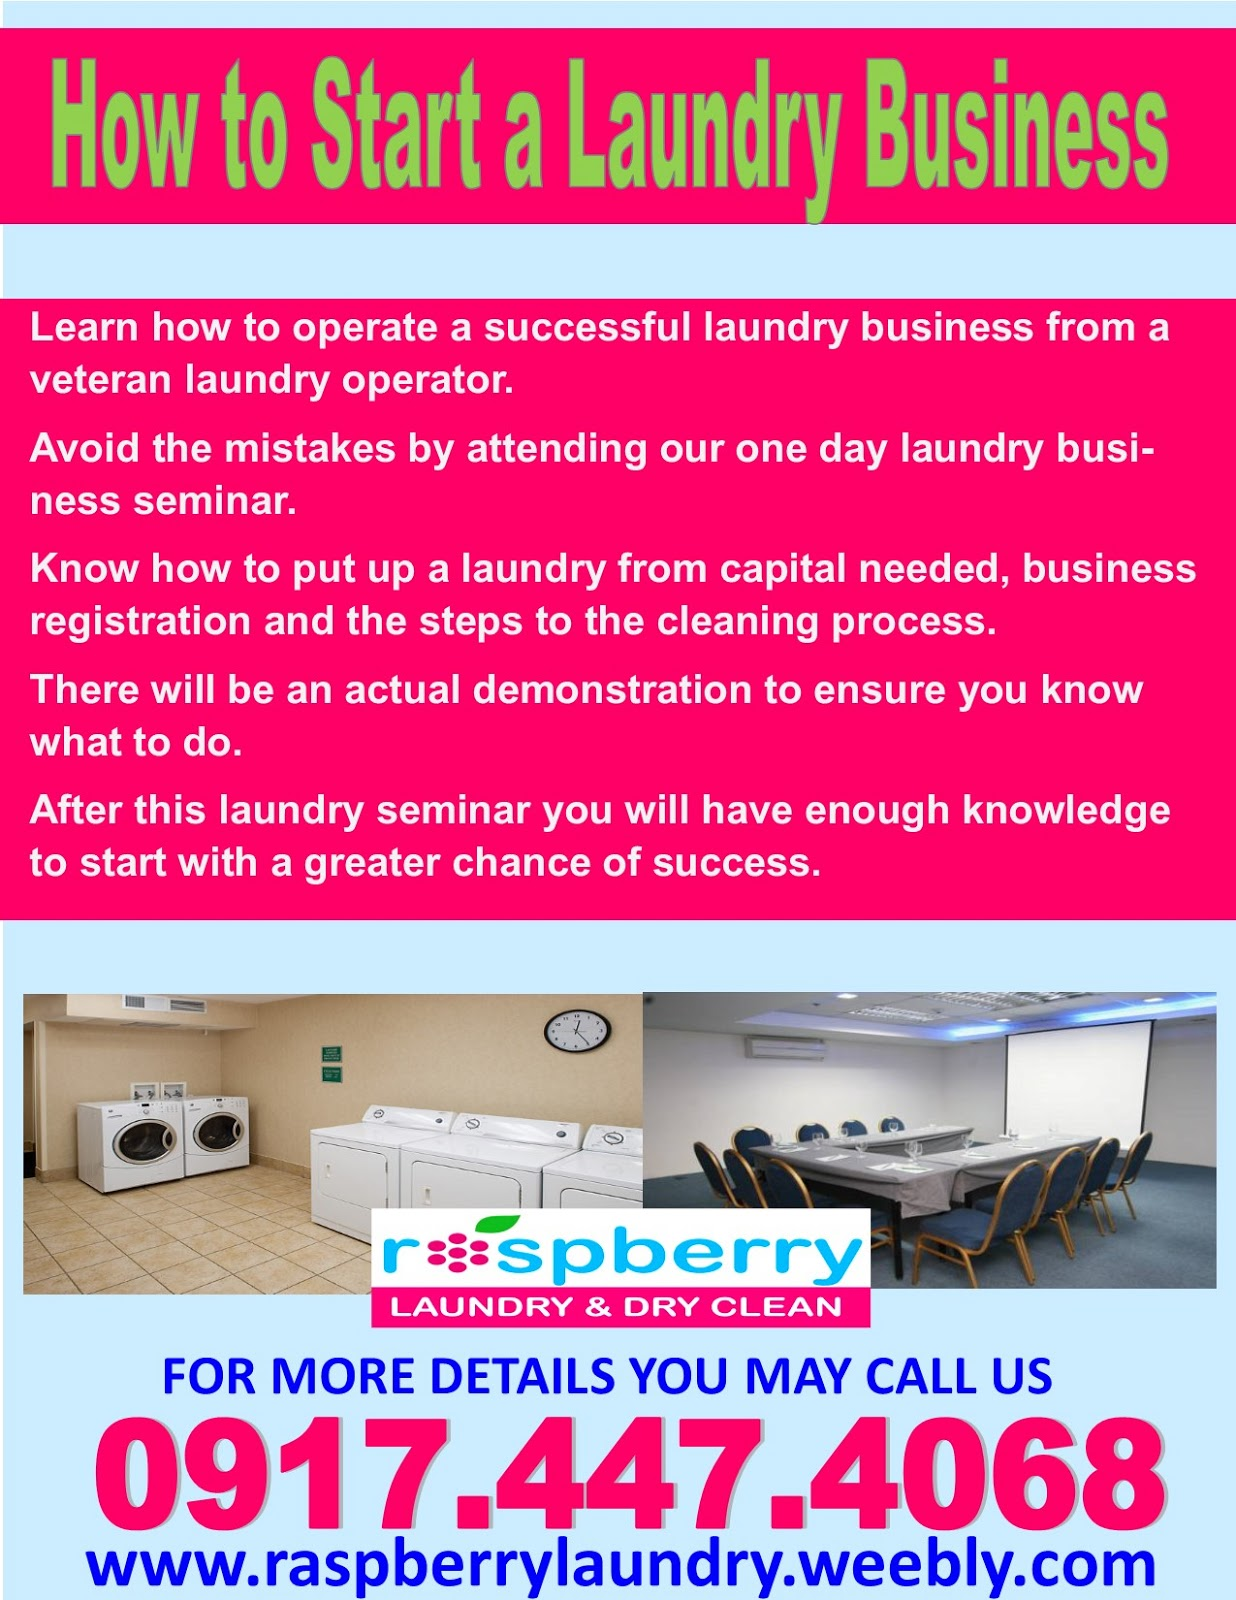 how to start a laundry business in kerala